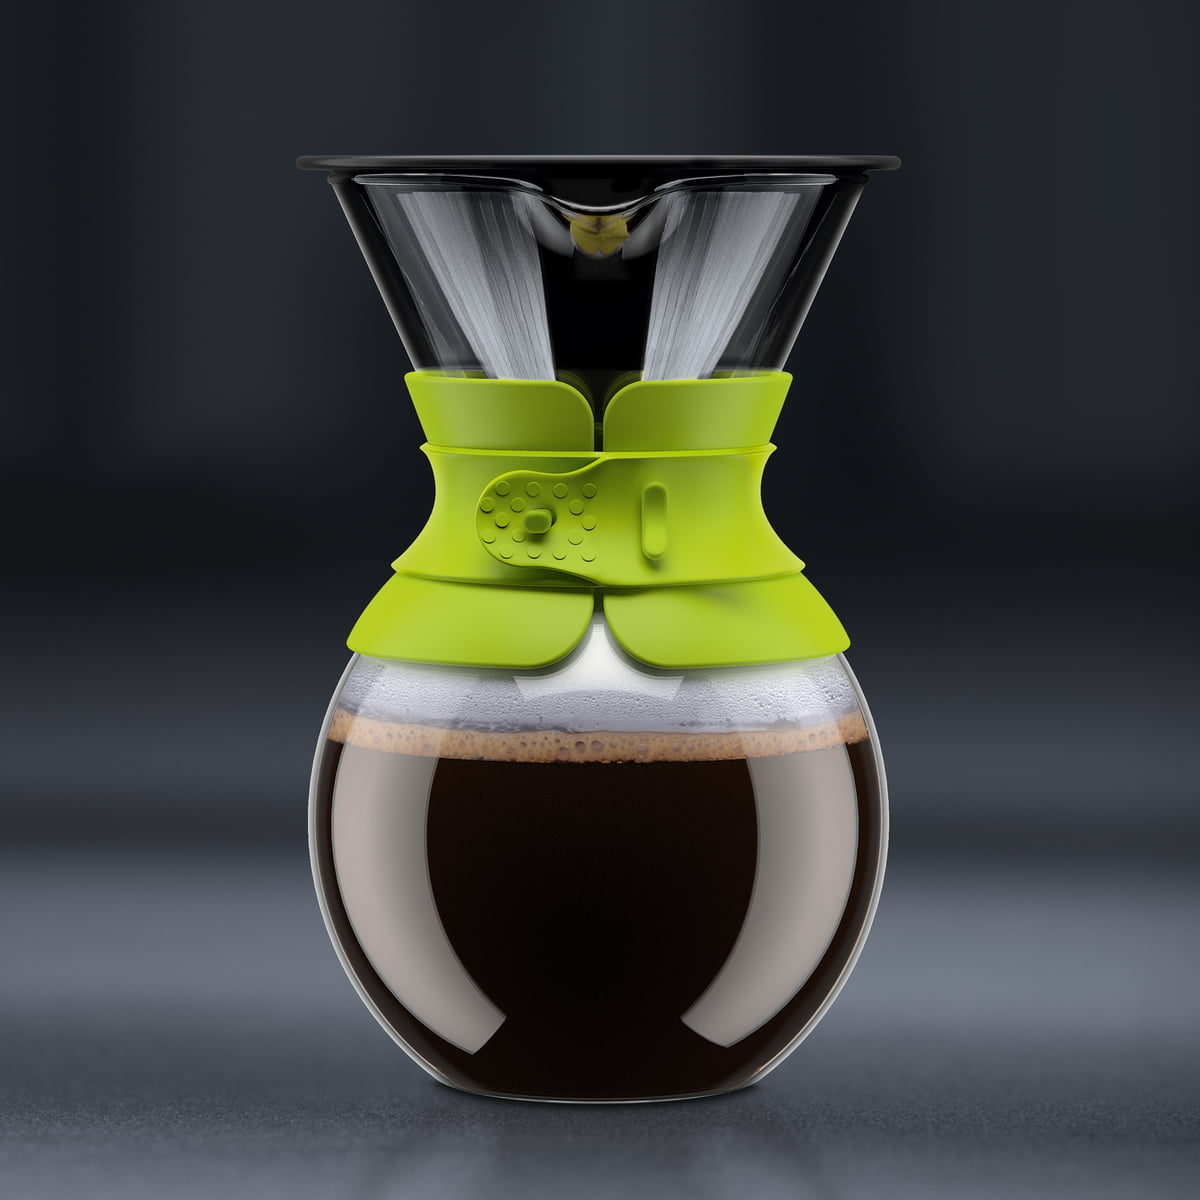 Pour Over Coffee Maker.Monocle And Mustache Wax Sold Separately. Fvkagdjo2l Pour Over Coffee ...